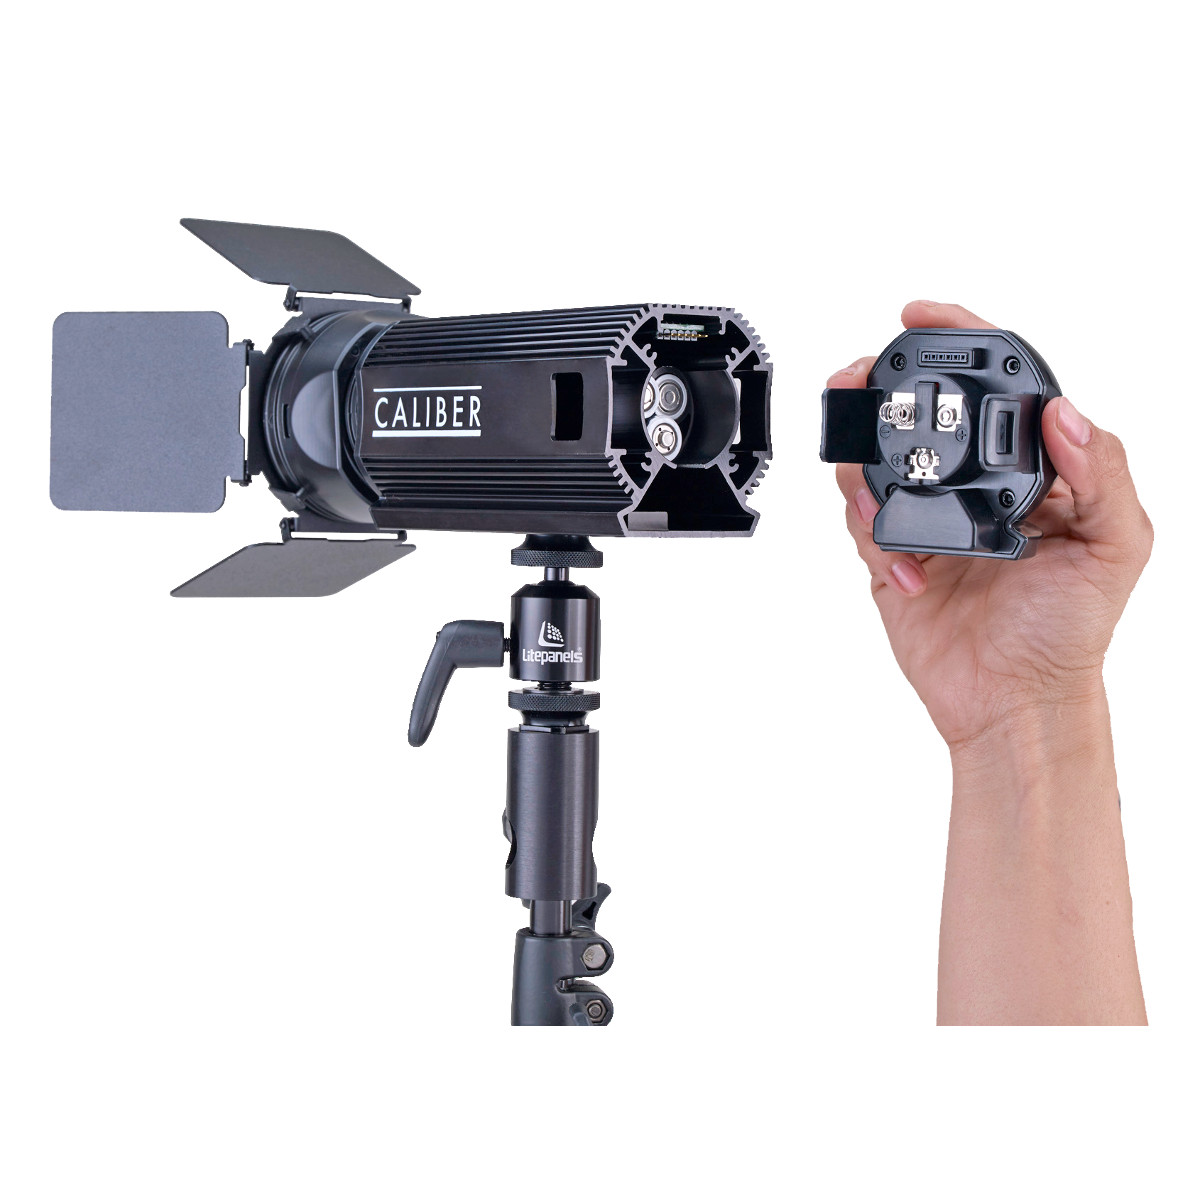 Litepanels Caliber 3-Light Kit